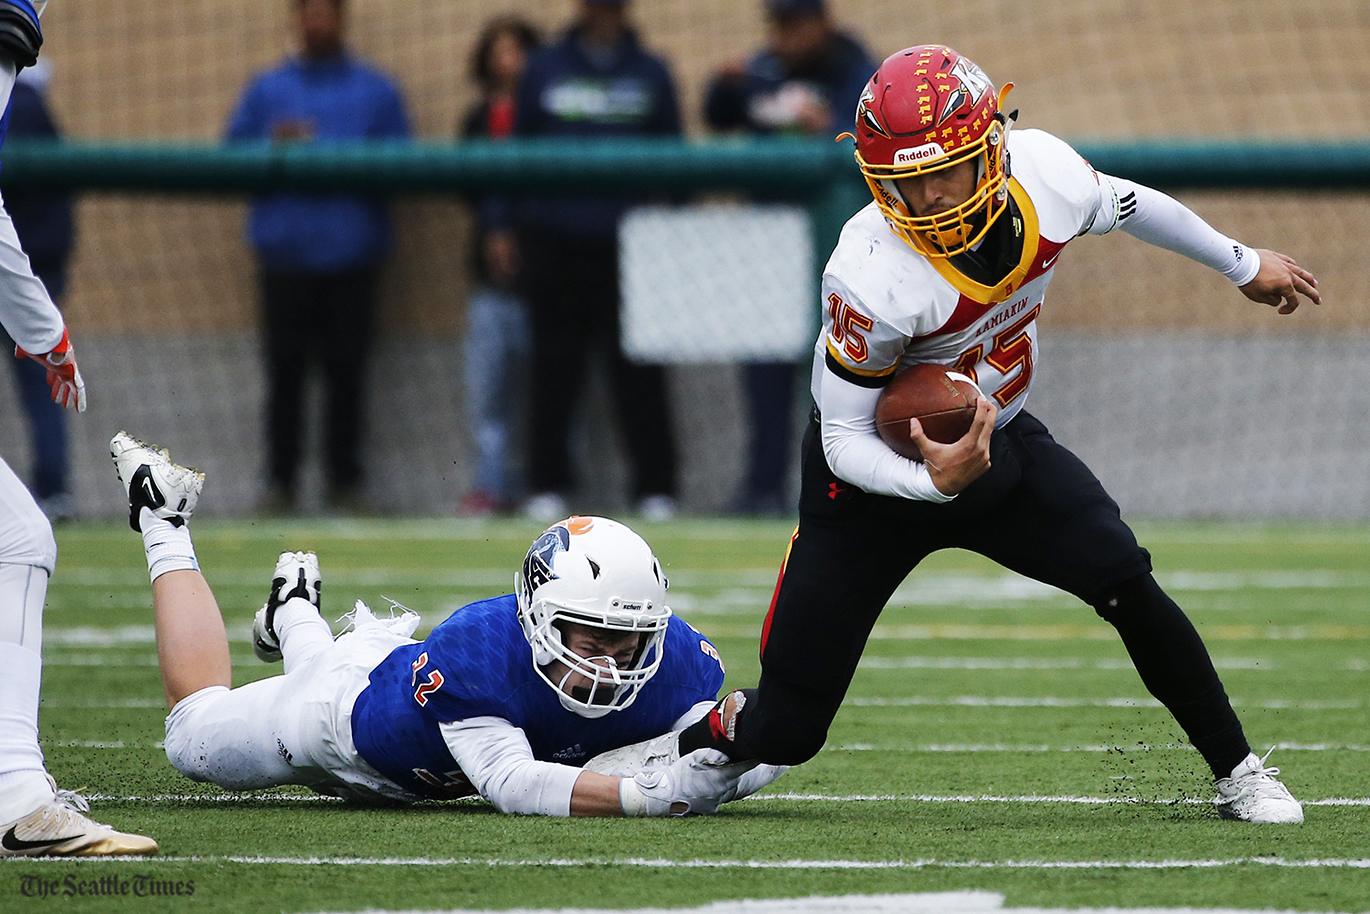 Kamiakin Braves quarterback Zach Borischbreaks free of a defender during the first half of their State semifinal game against the Eastside Catholic Crusaders held at Pop Keeney Stadium in Bothell on Saturday, November 26, 2016.